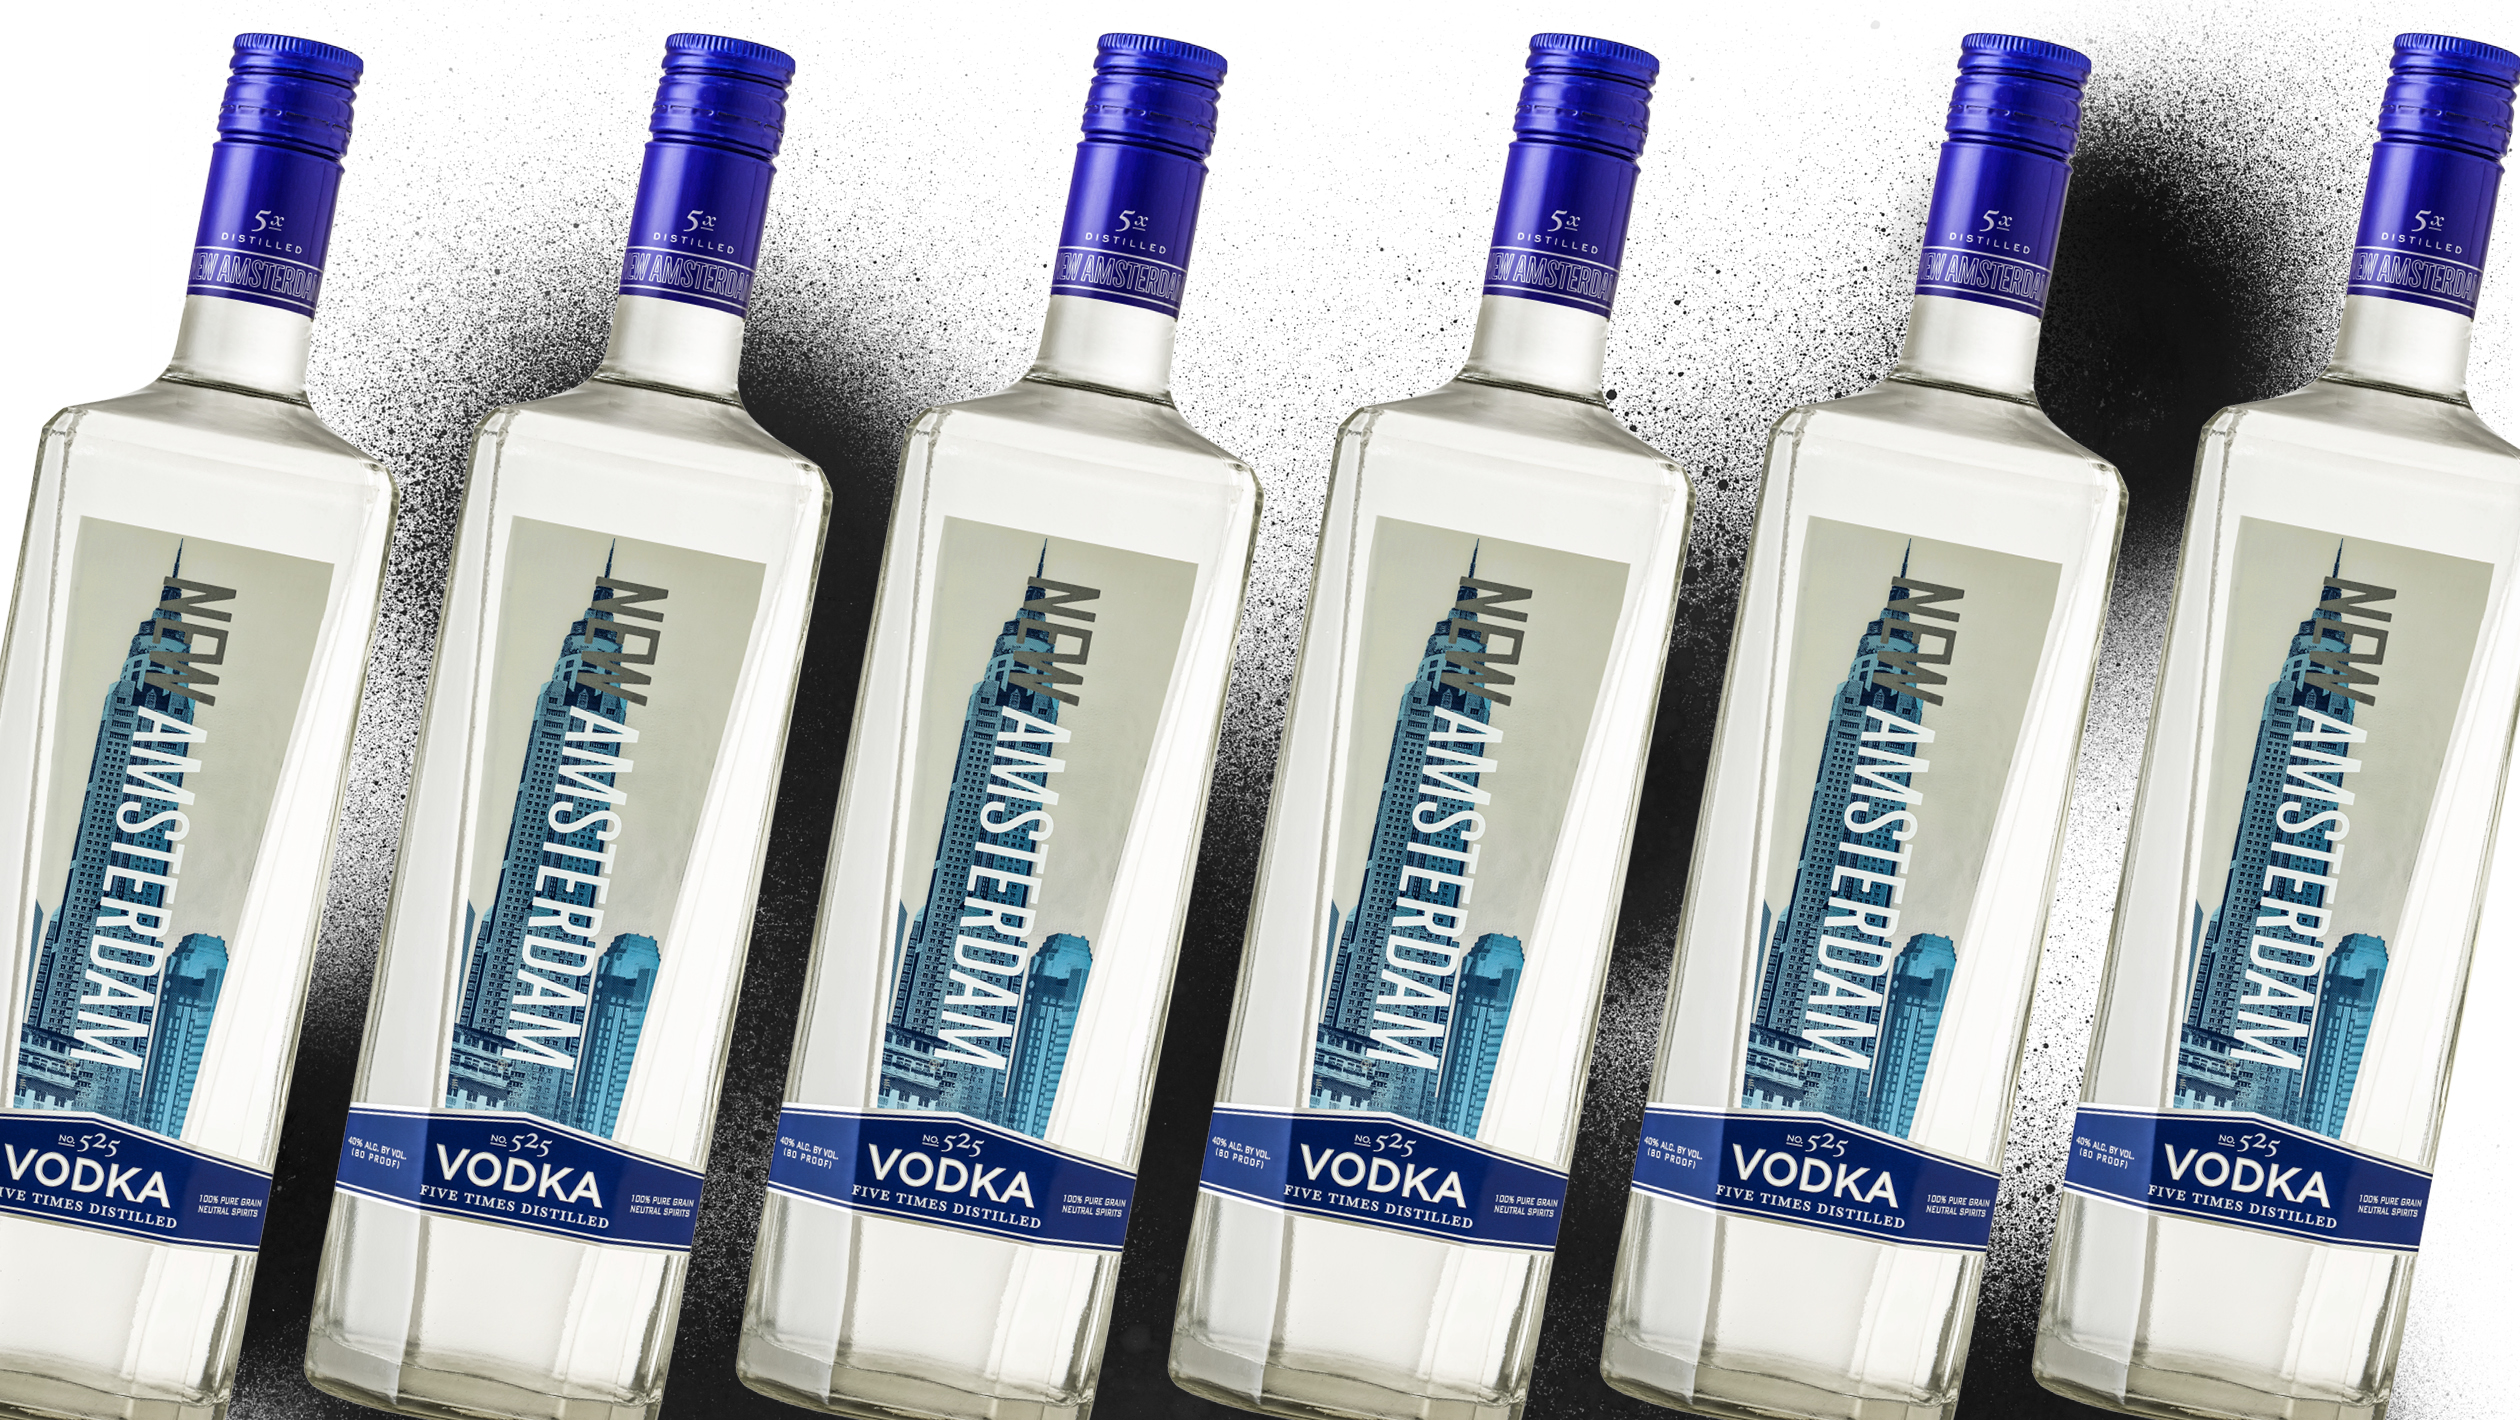 How New Amsterdam Became the World's Fastest-Growing Spirits